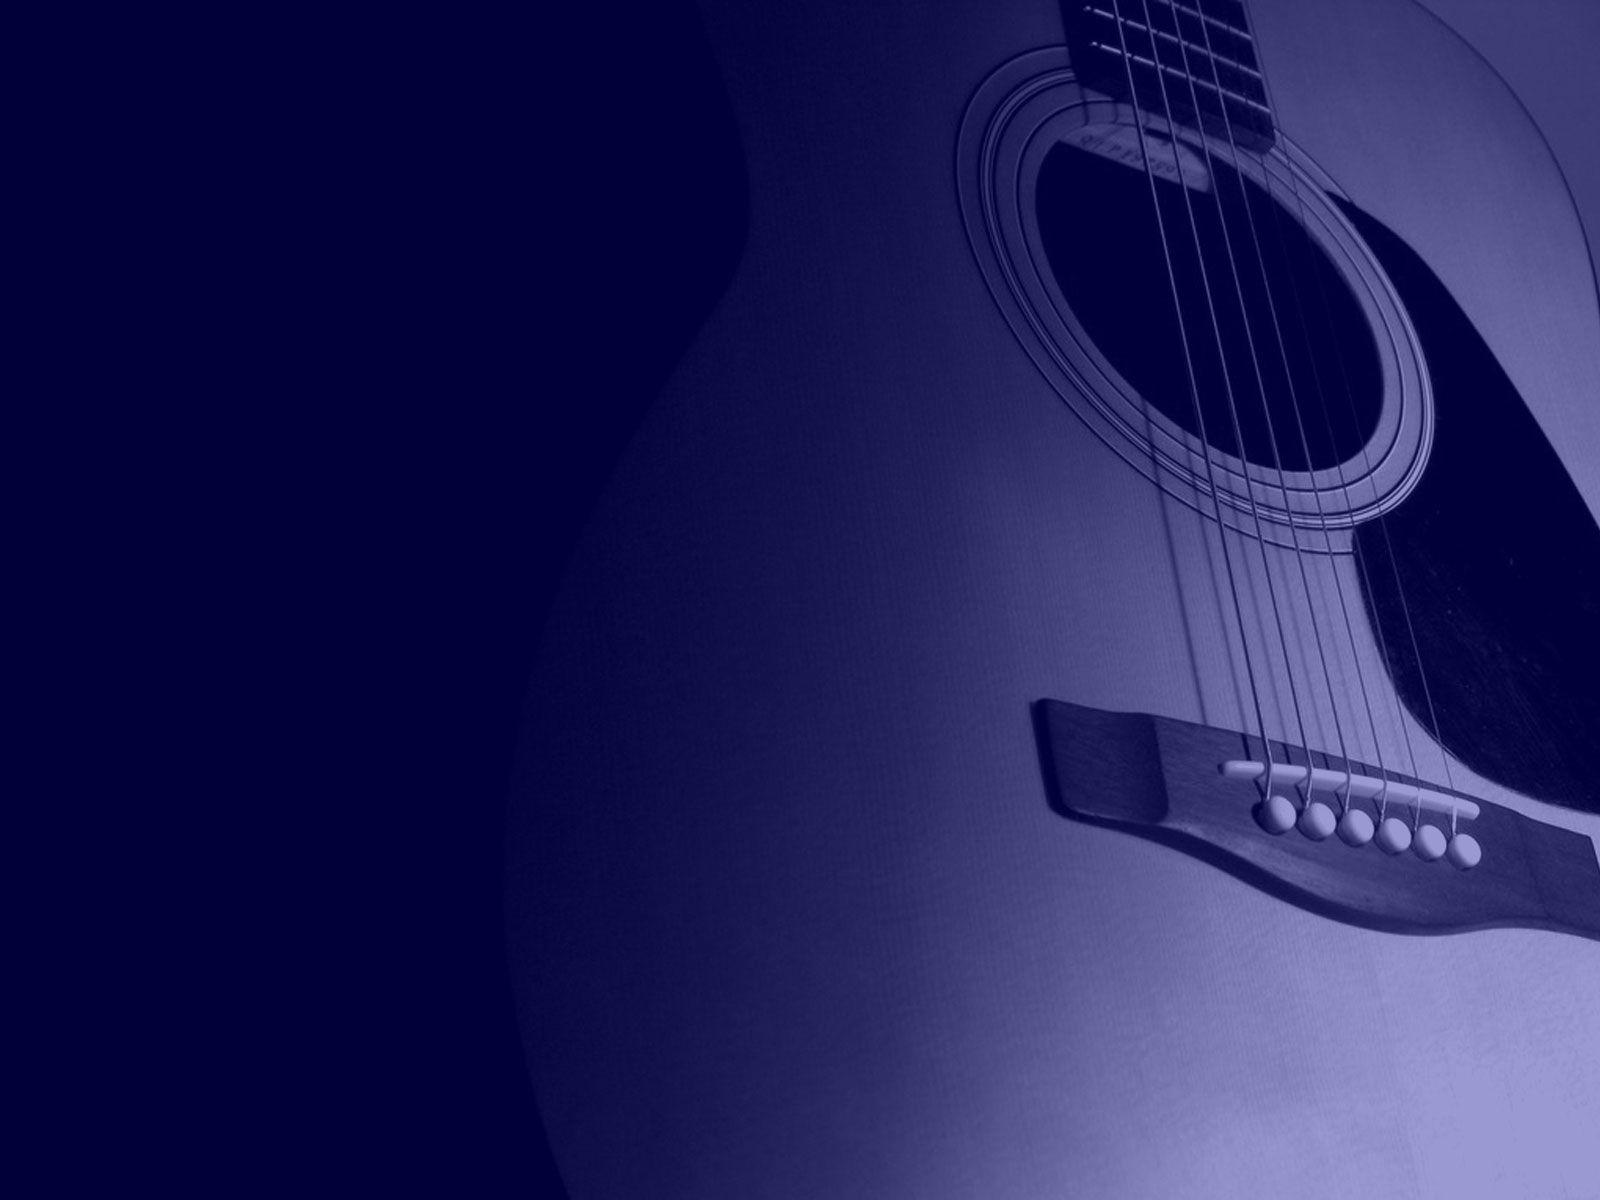 Guitar Blue Wallpaper Christian Wallpapers And Backgrounds